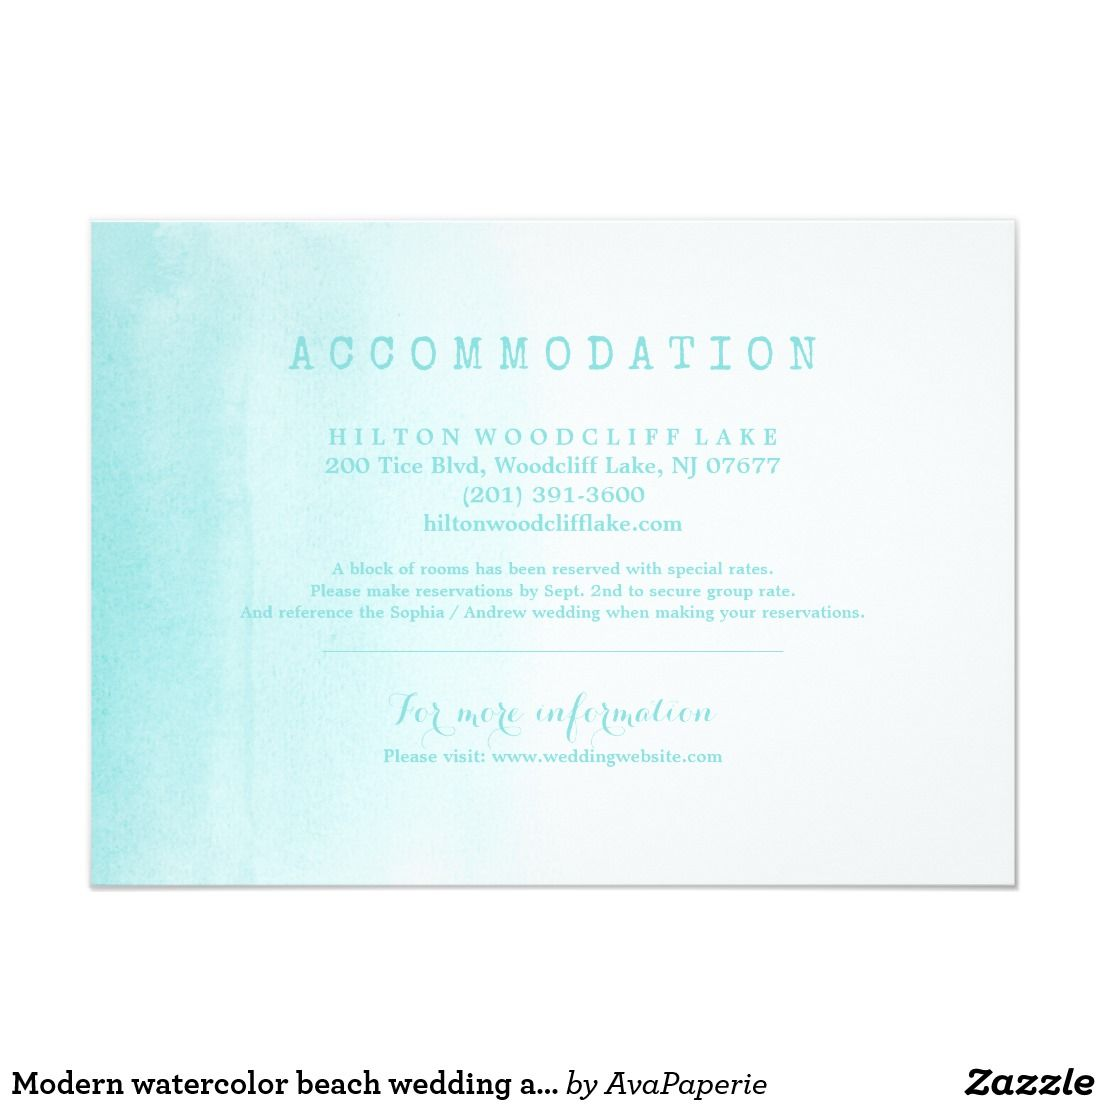 Modern watercolor beach wedding accommodation enclosure card ...